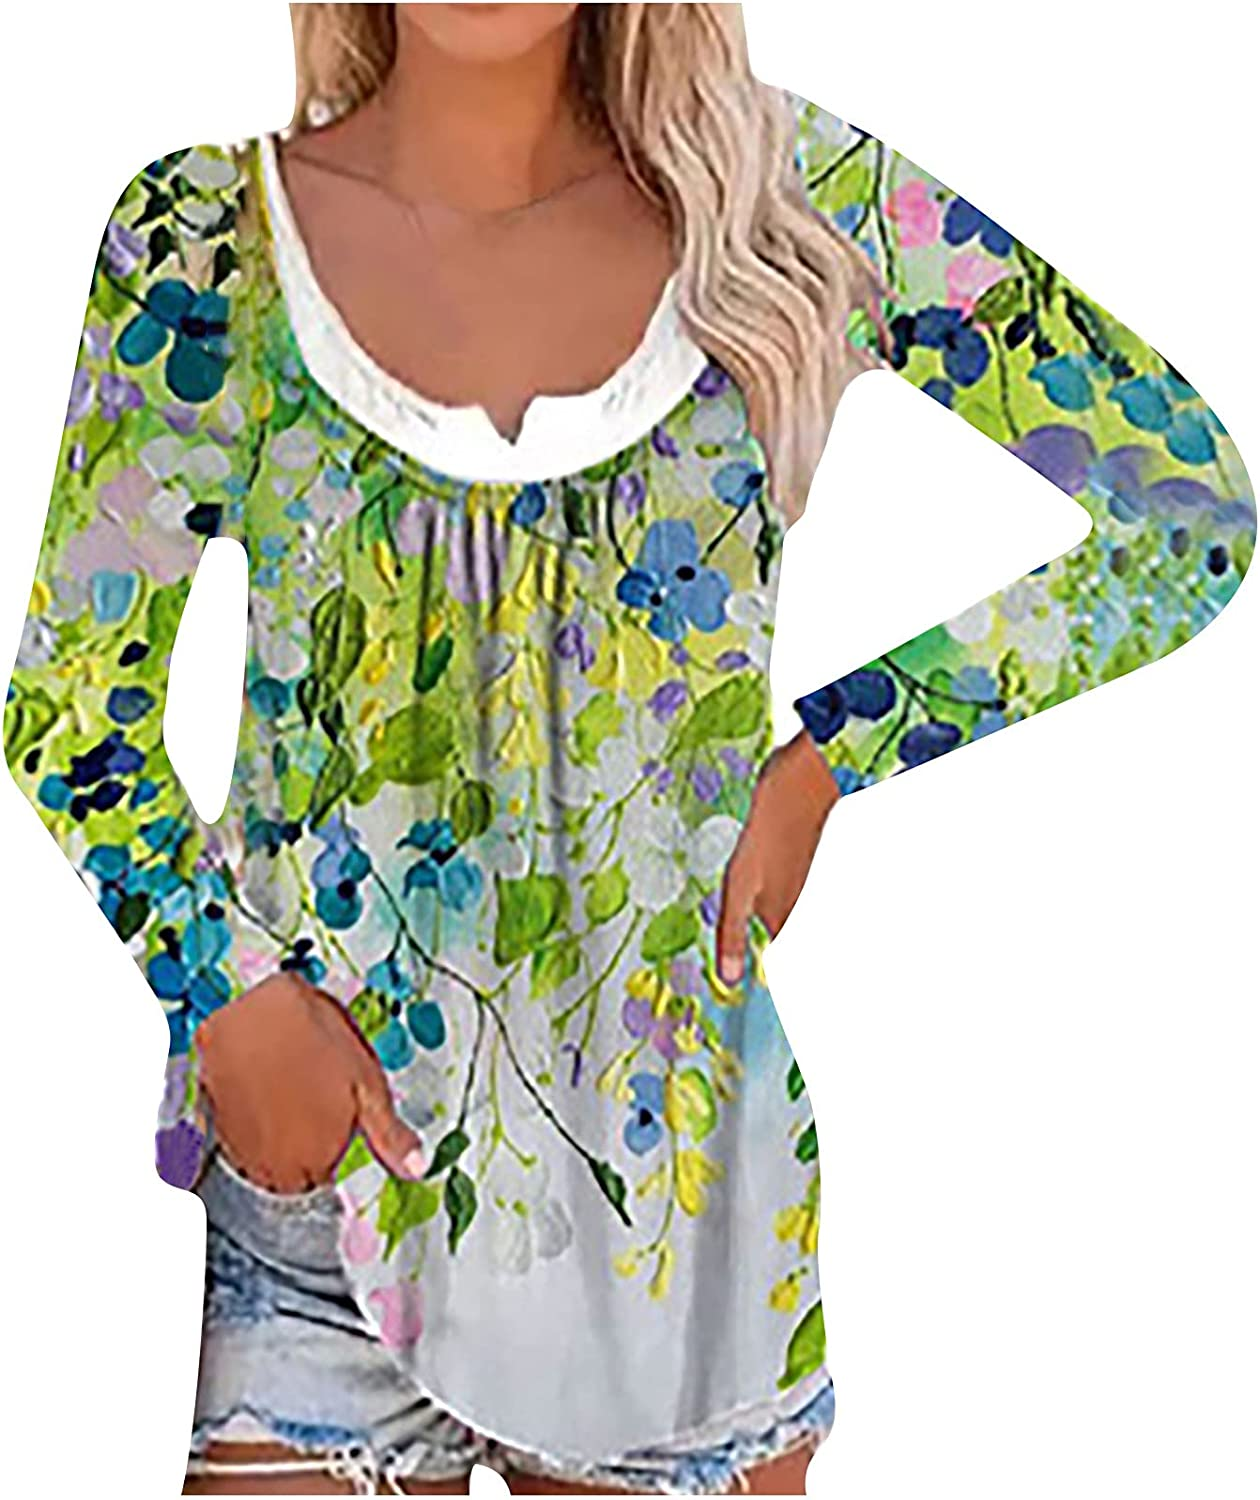 Women's Long-Sleeve Printed Pullover Tops Fake Two-Piece Bottoming Shirt Round Neck Head Blouse Tunic Top Tops